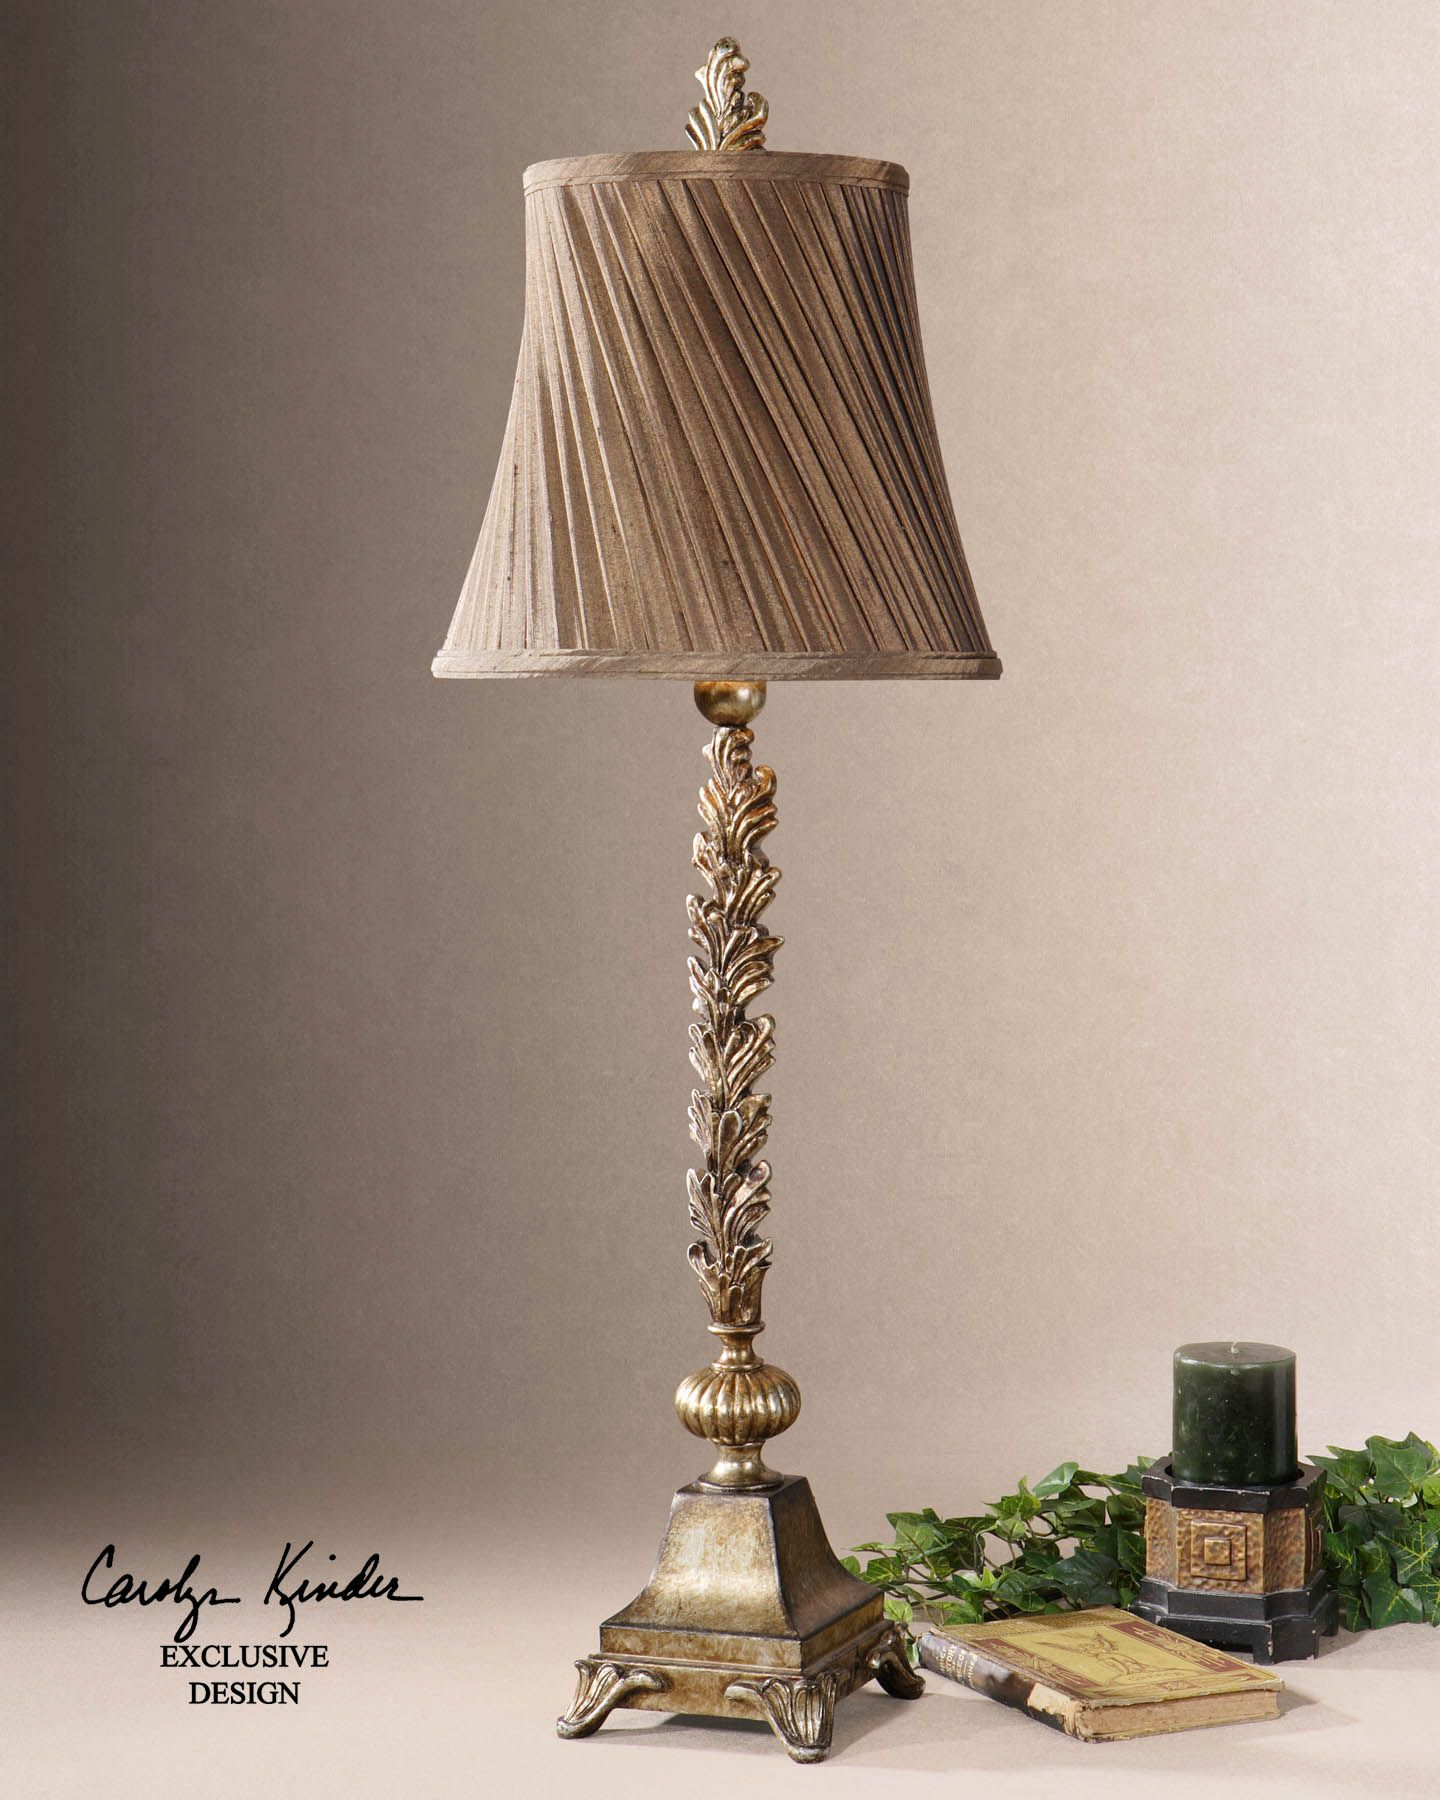 Laurent french country leaf design buffet table lamp tuscan old laurent french country leaf design buffet table lamp tuscan old world geotapseo Image collections